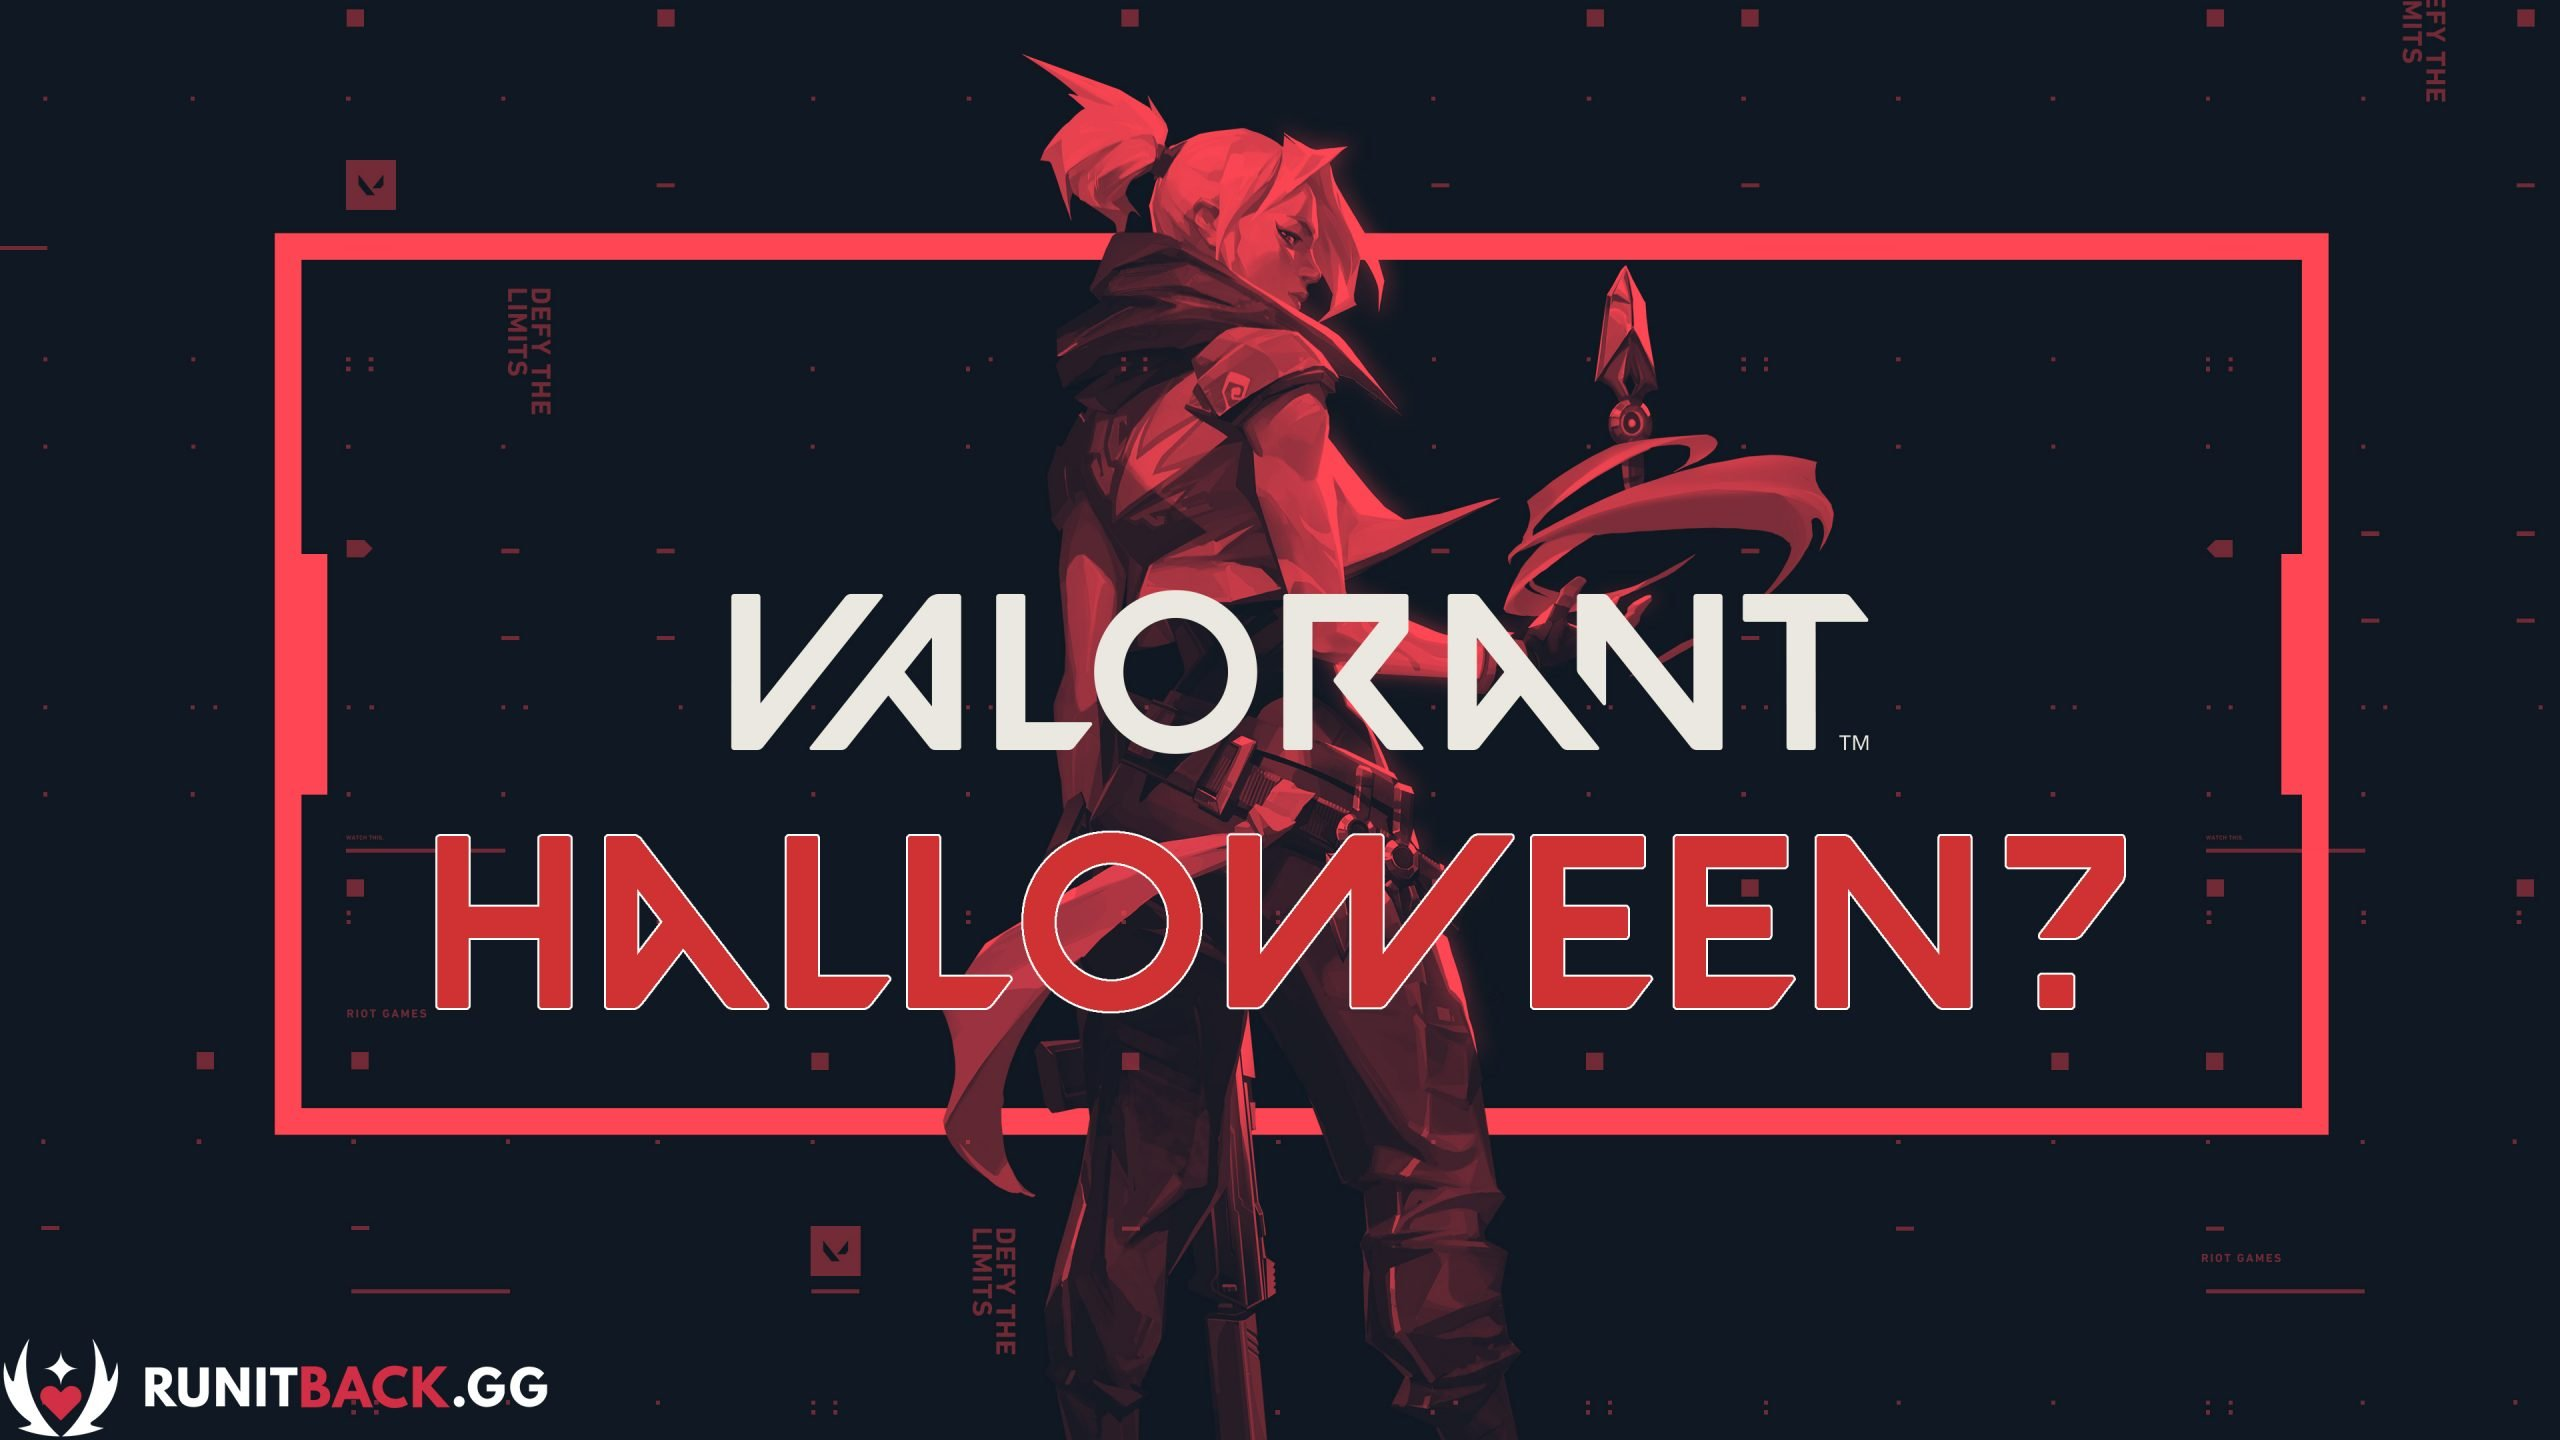 Would Valorant benefit from a Halloween event?